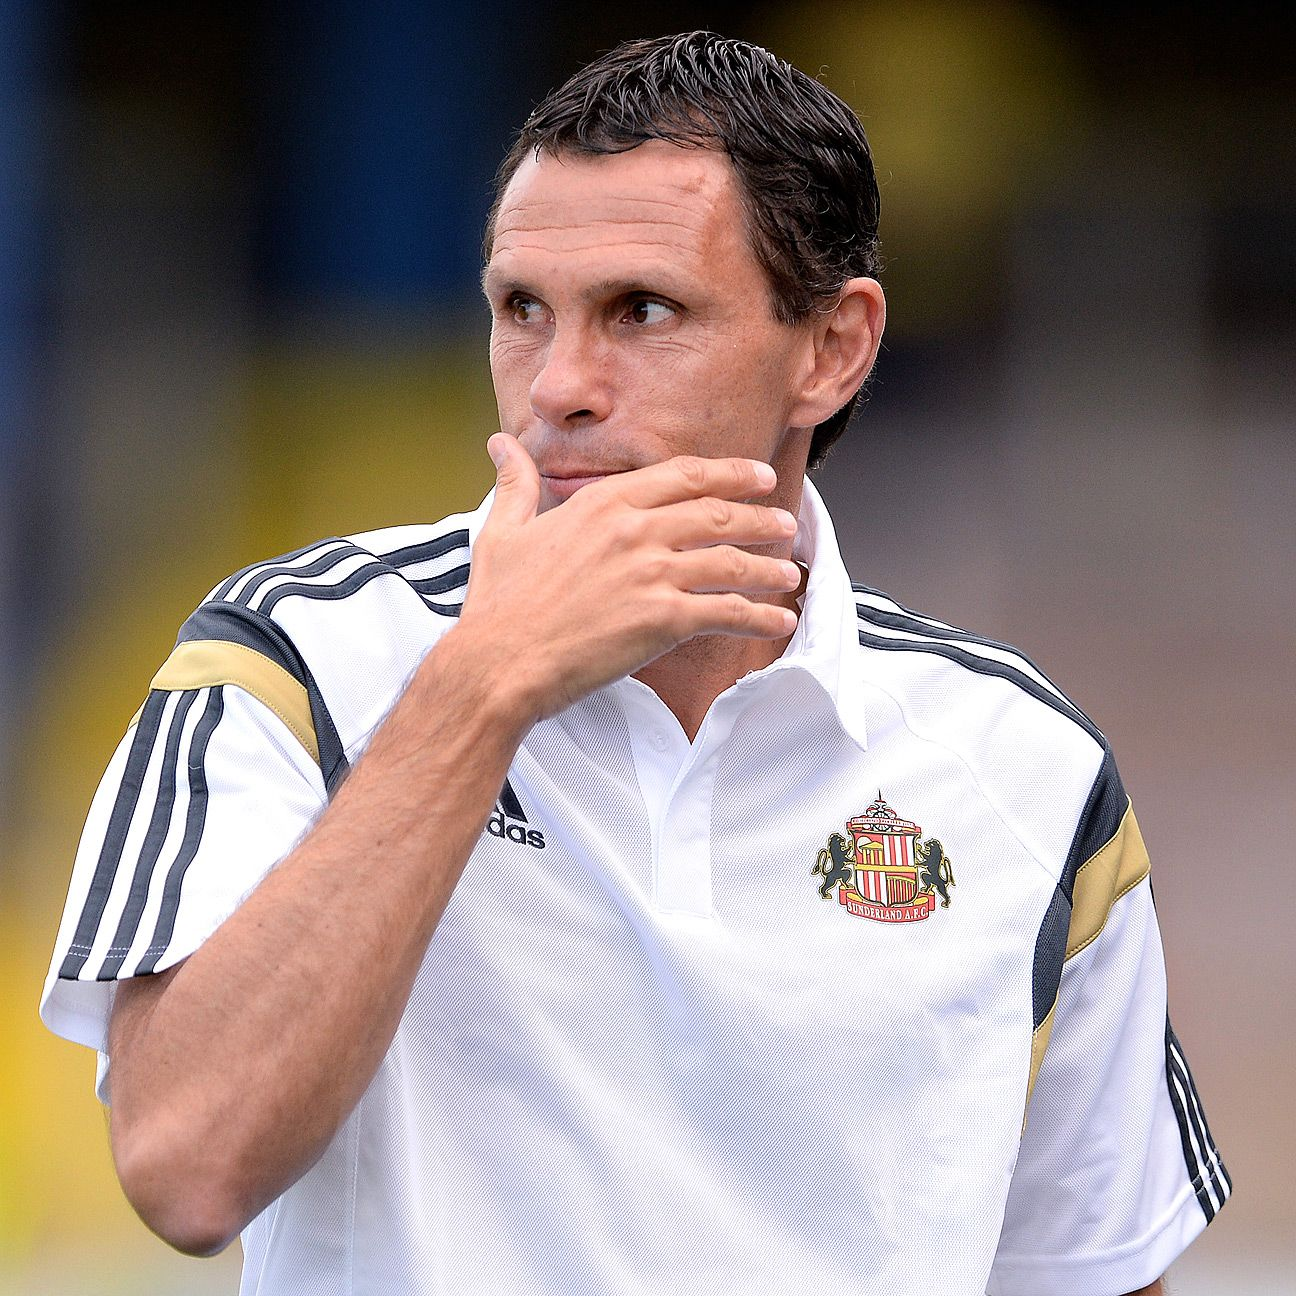 Sunderland boss Gus Poyet has some key decisions to make regarding his team's attack.